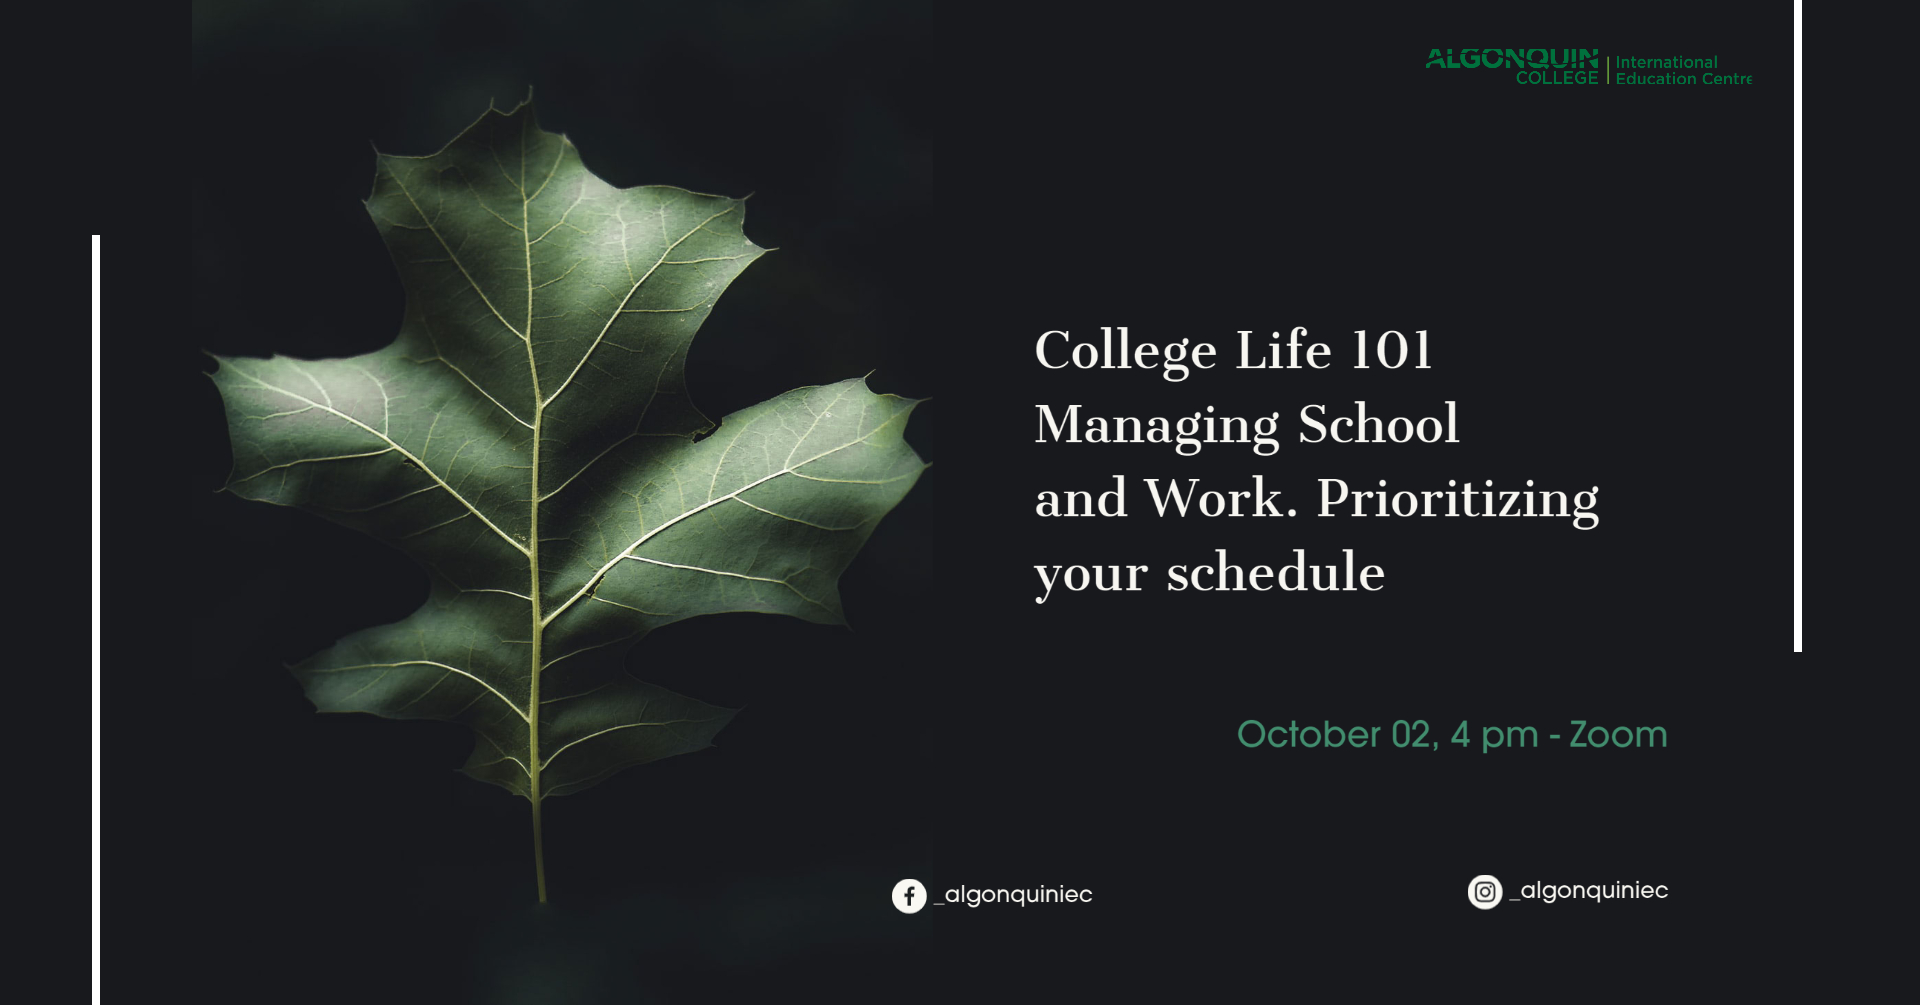 College Life 101 Managing School and Work. Prioritizing your schedule